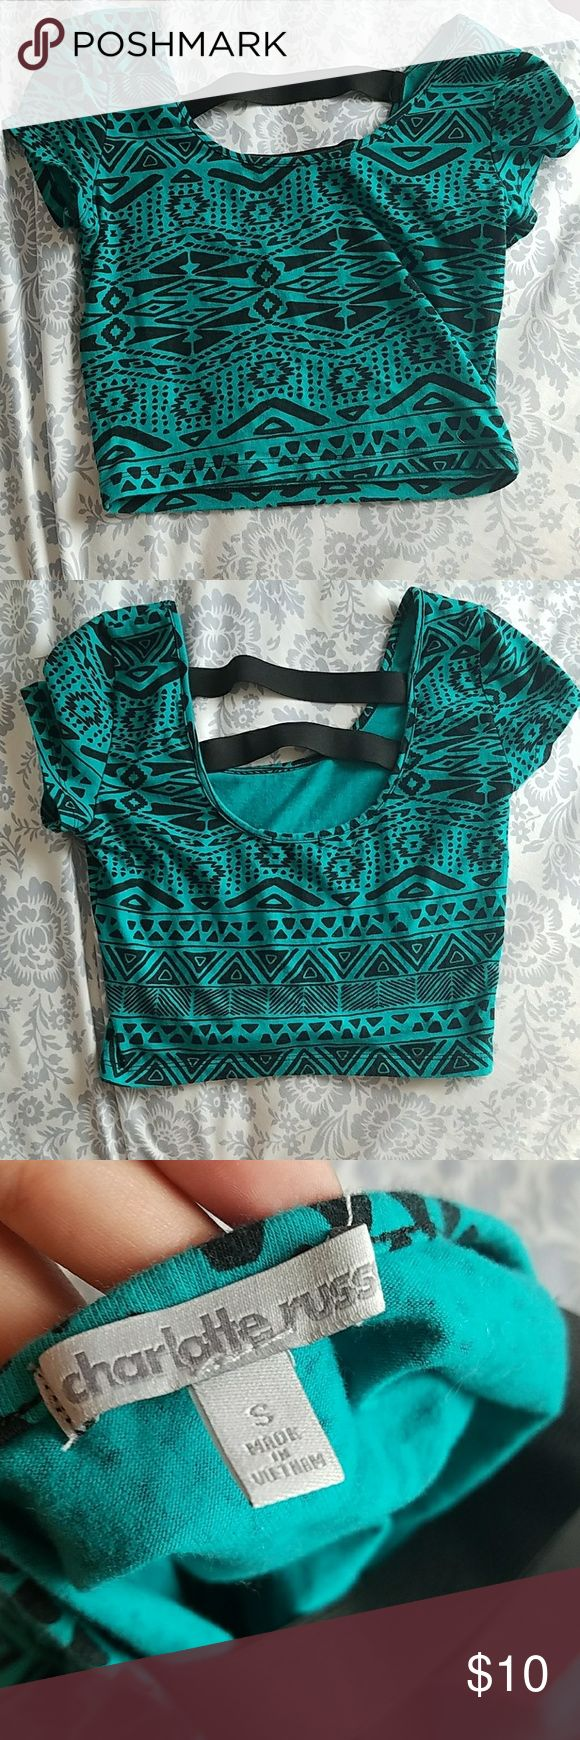 Aztec Crop Top Teal and black Aztec Crop Top great for a night out! It's in excellent used condition Charlotte Russe Tops Crop Tops